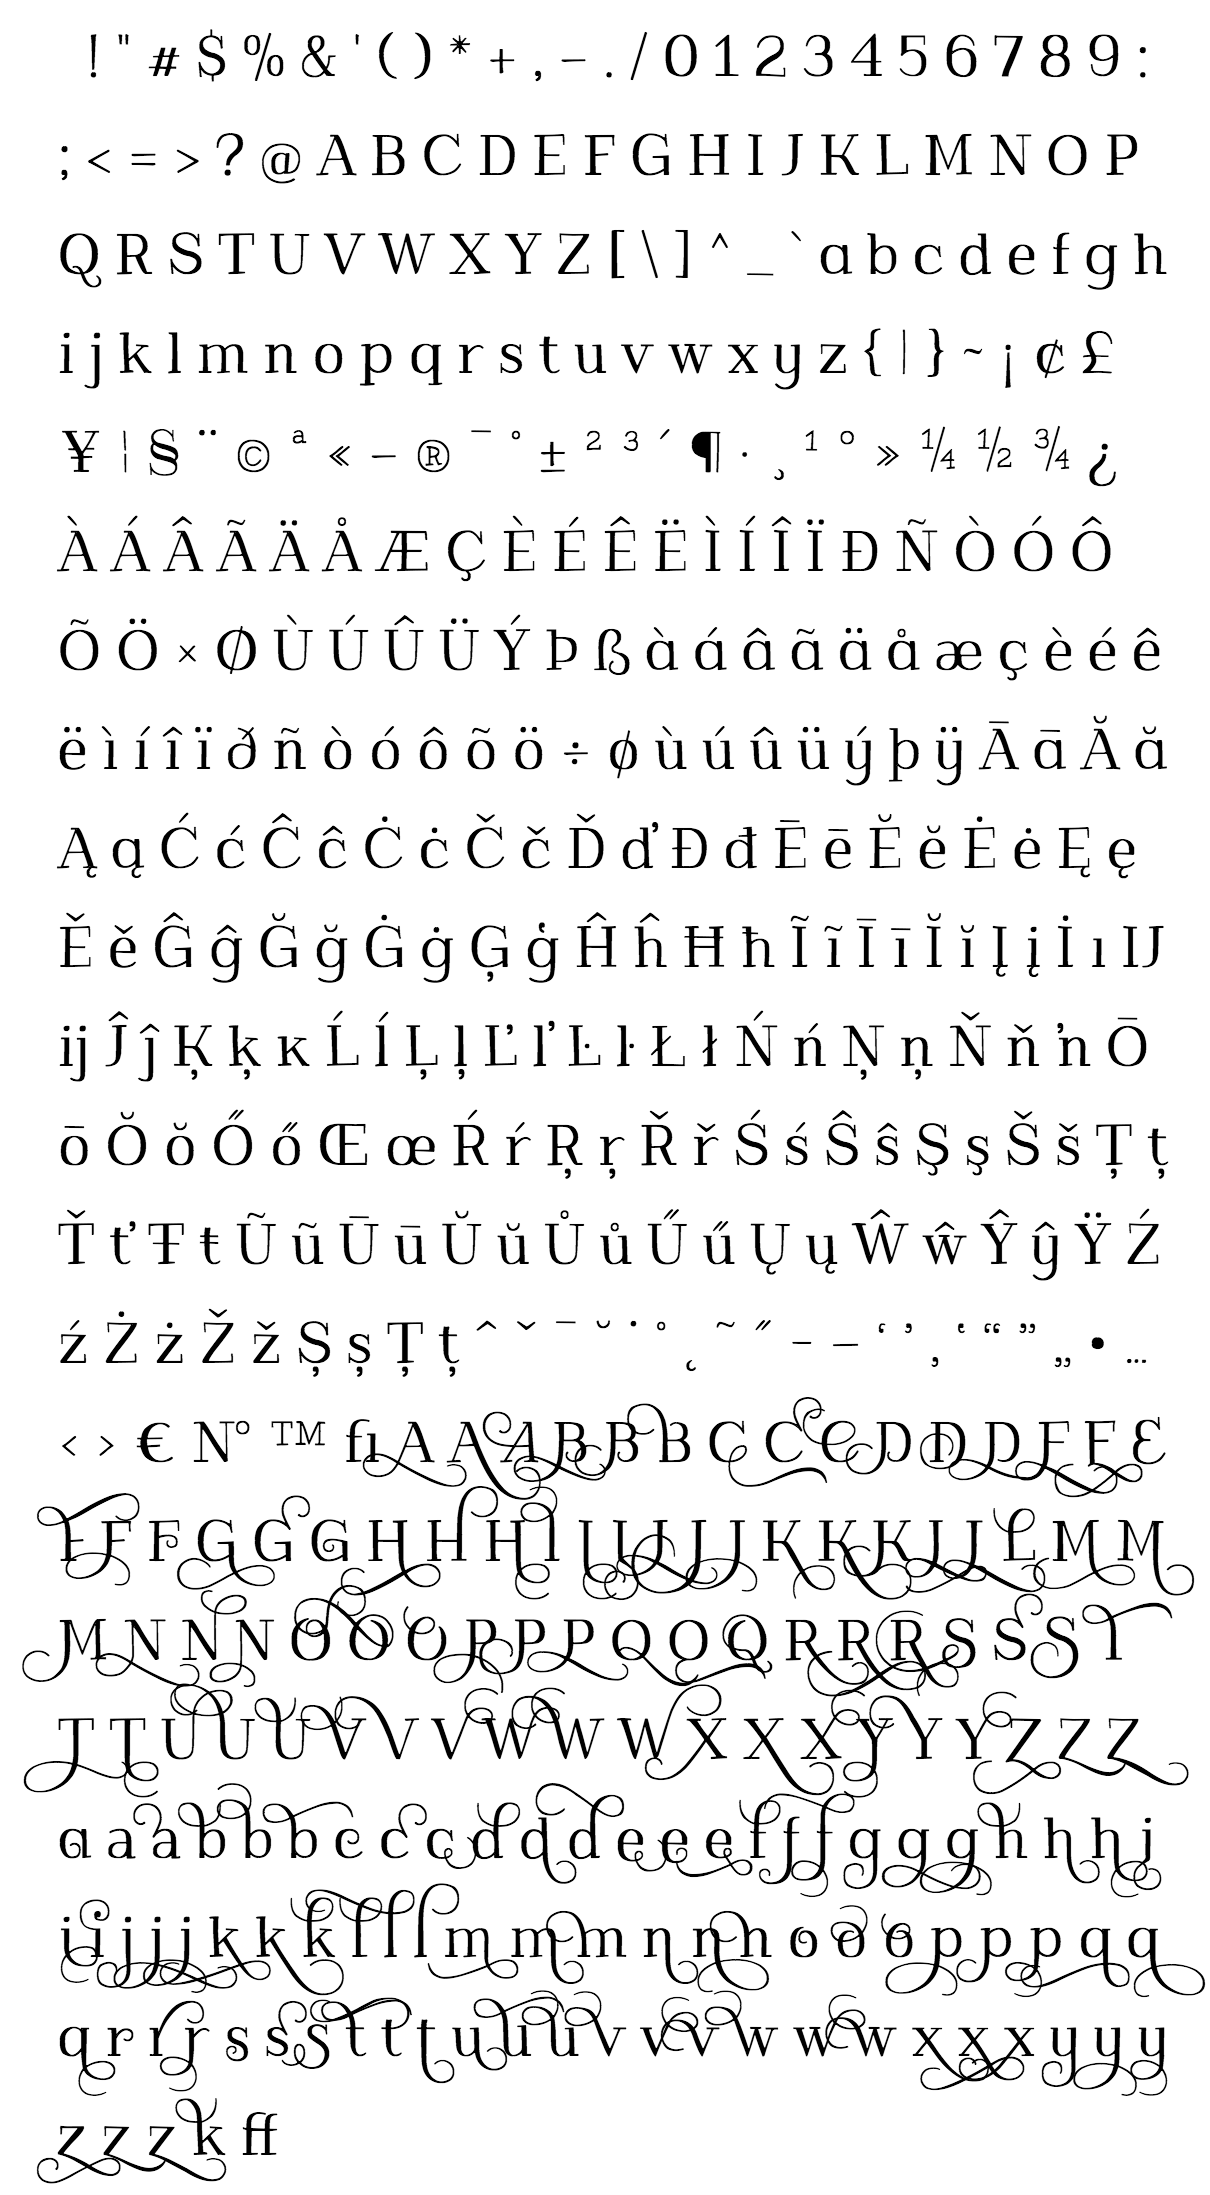 kowalski2 font - complete character list